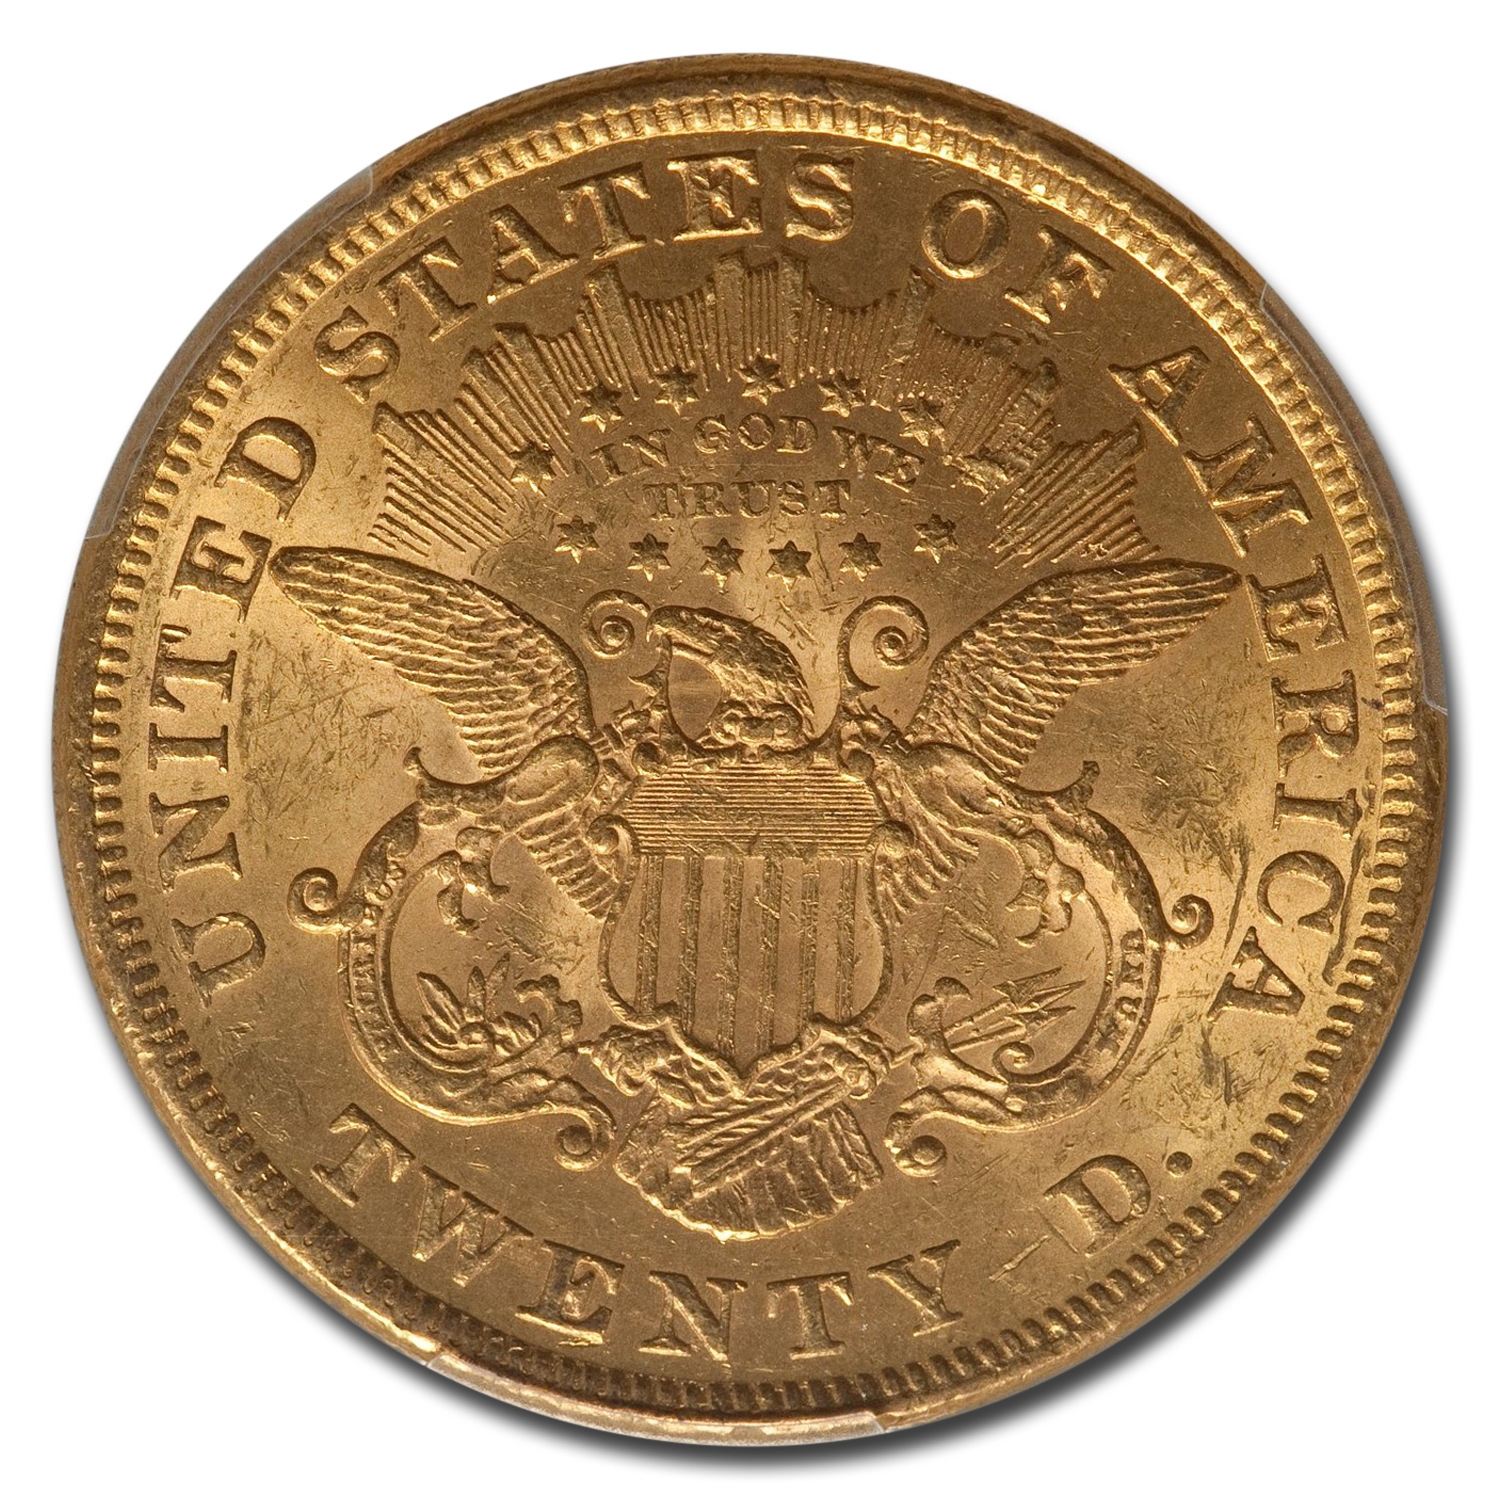 1873 $20 Gold Liberty Double Eagle - (Open 3) - MS-61 PCGS